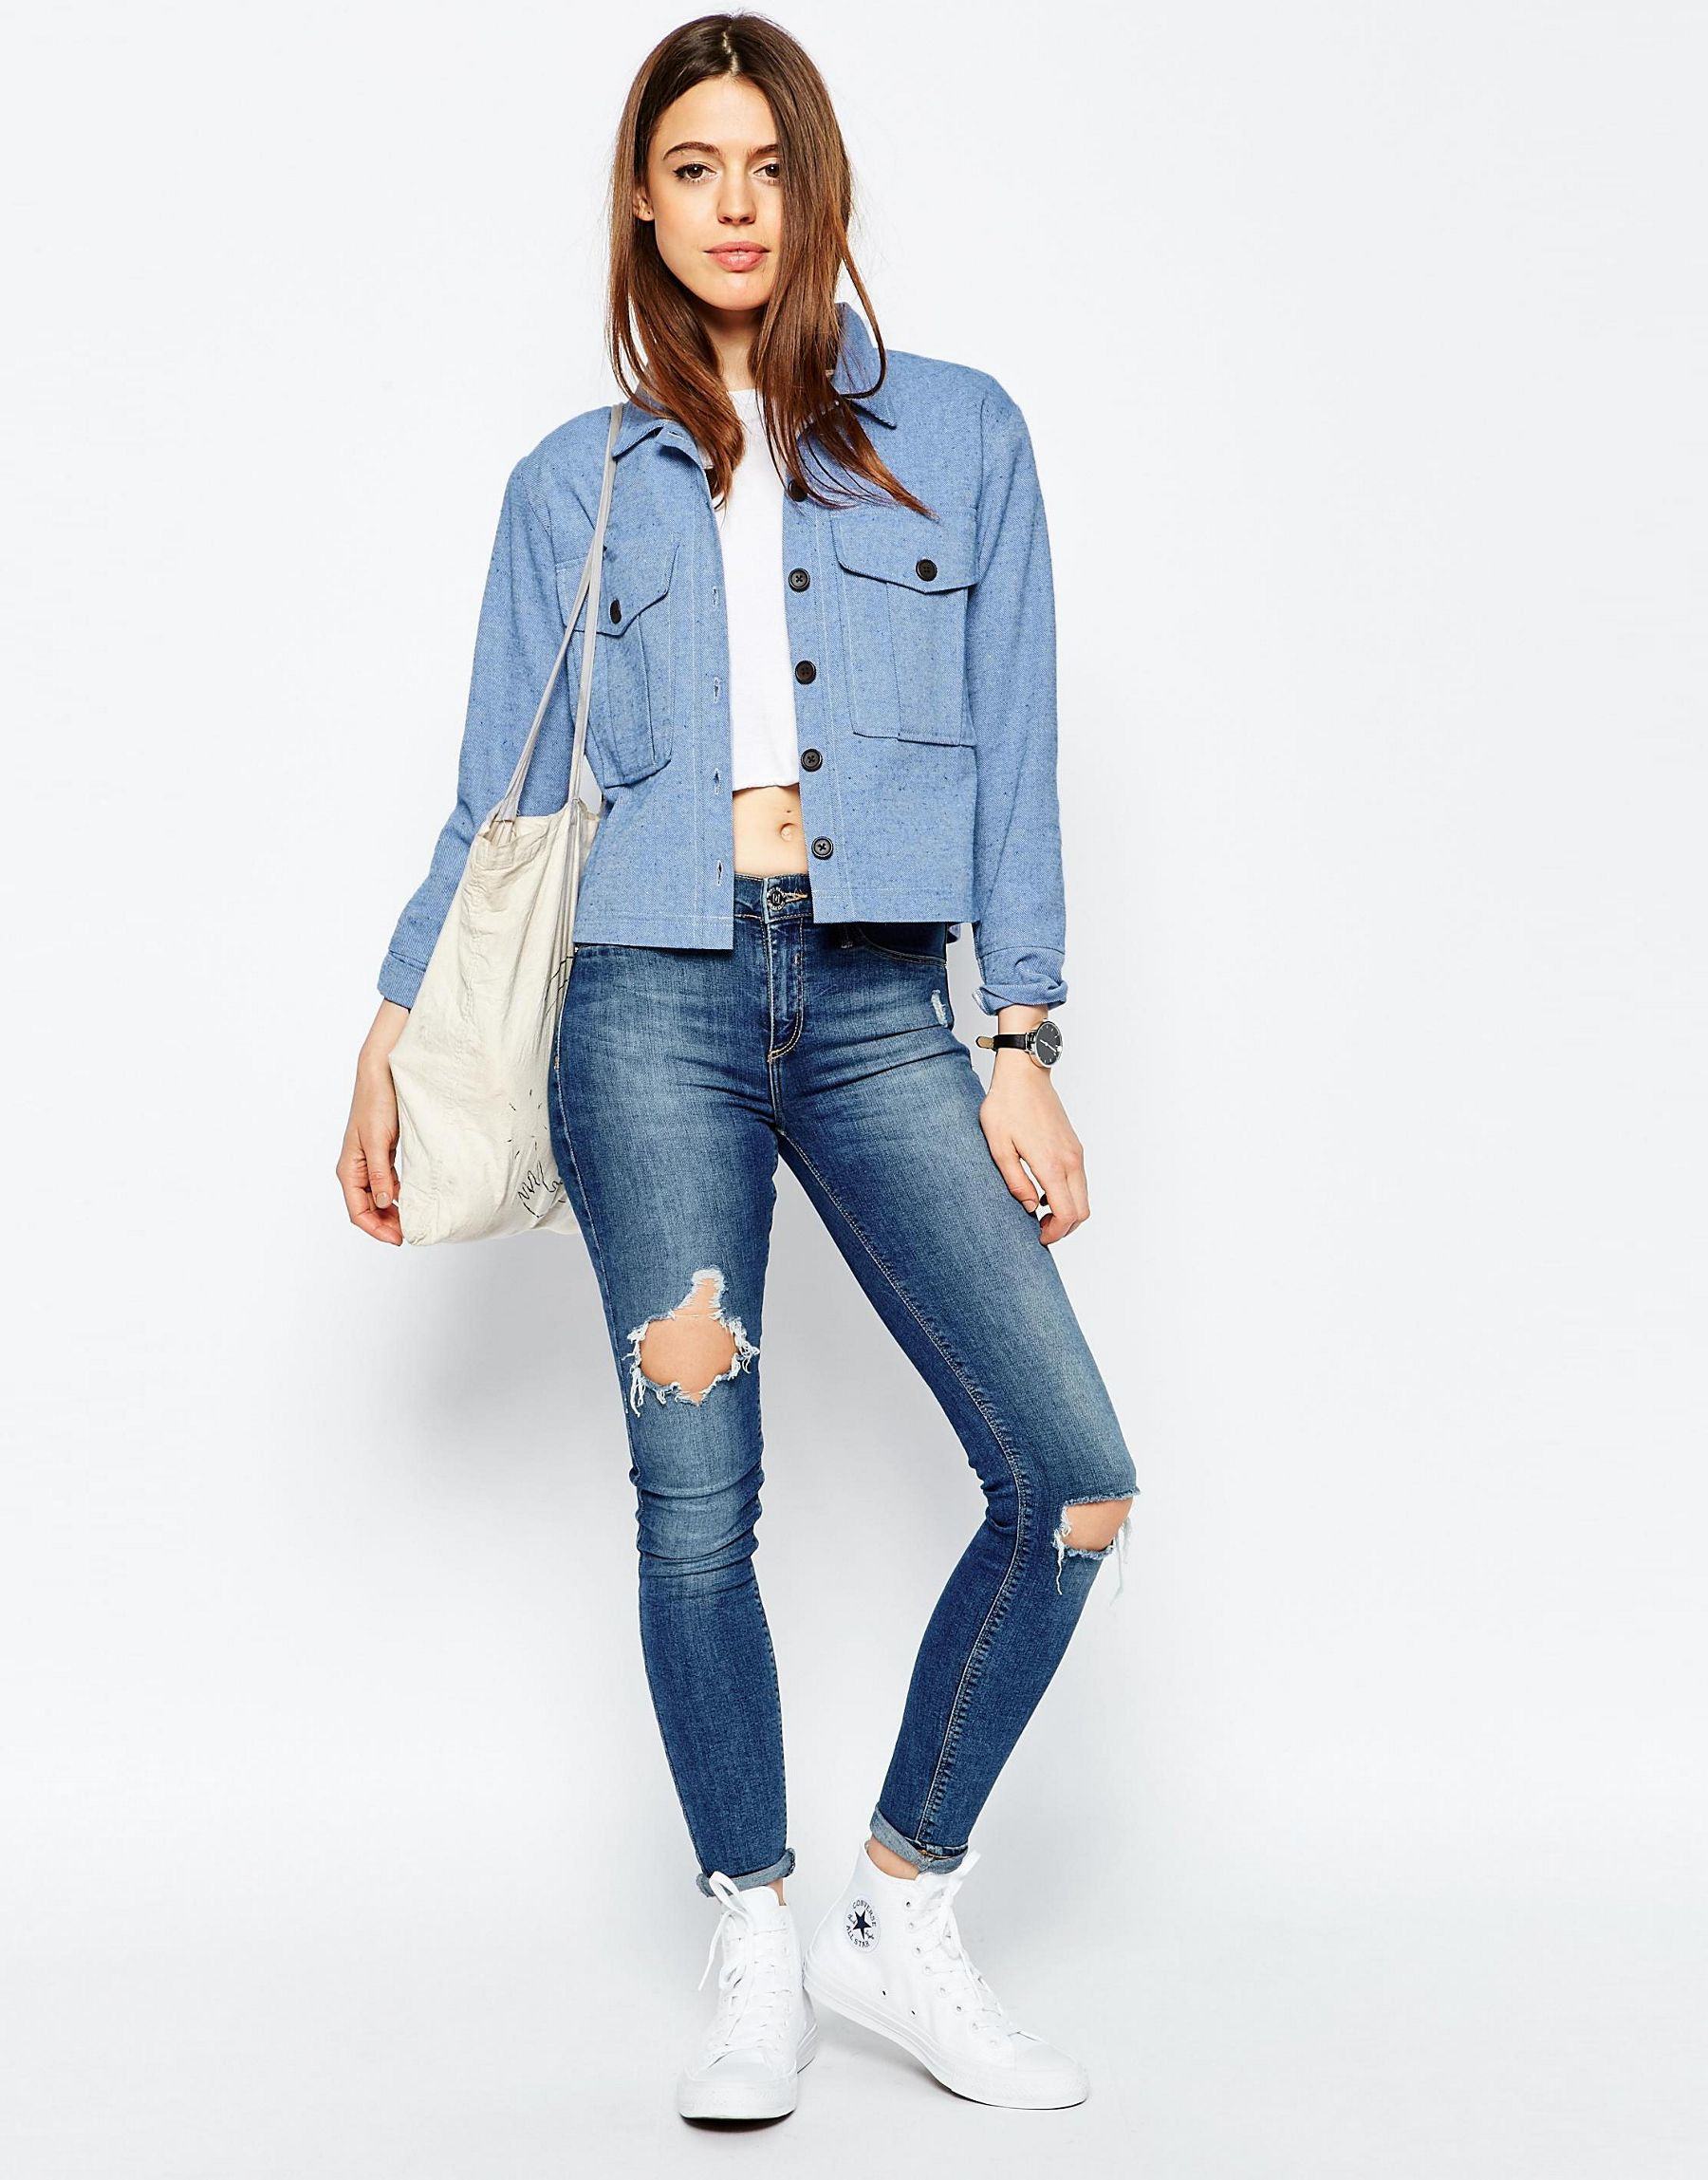 d2e8d36633 Lyst - ASOS Chambray Shacket With Button Detail in Blue